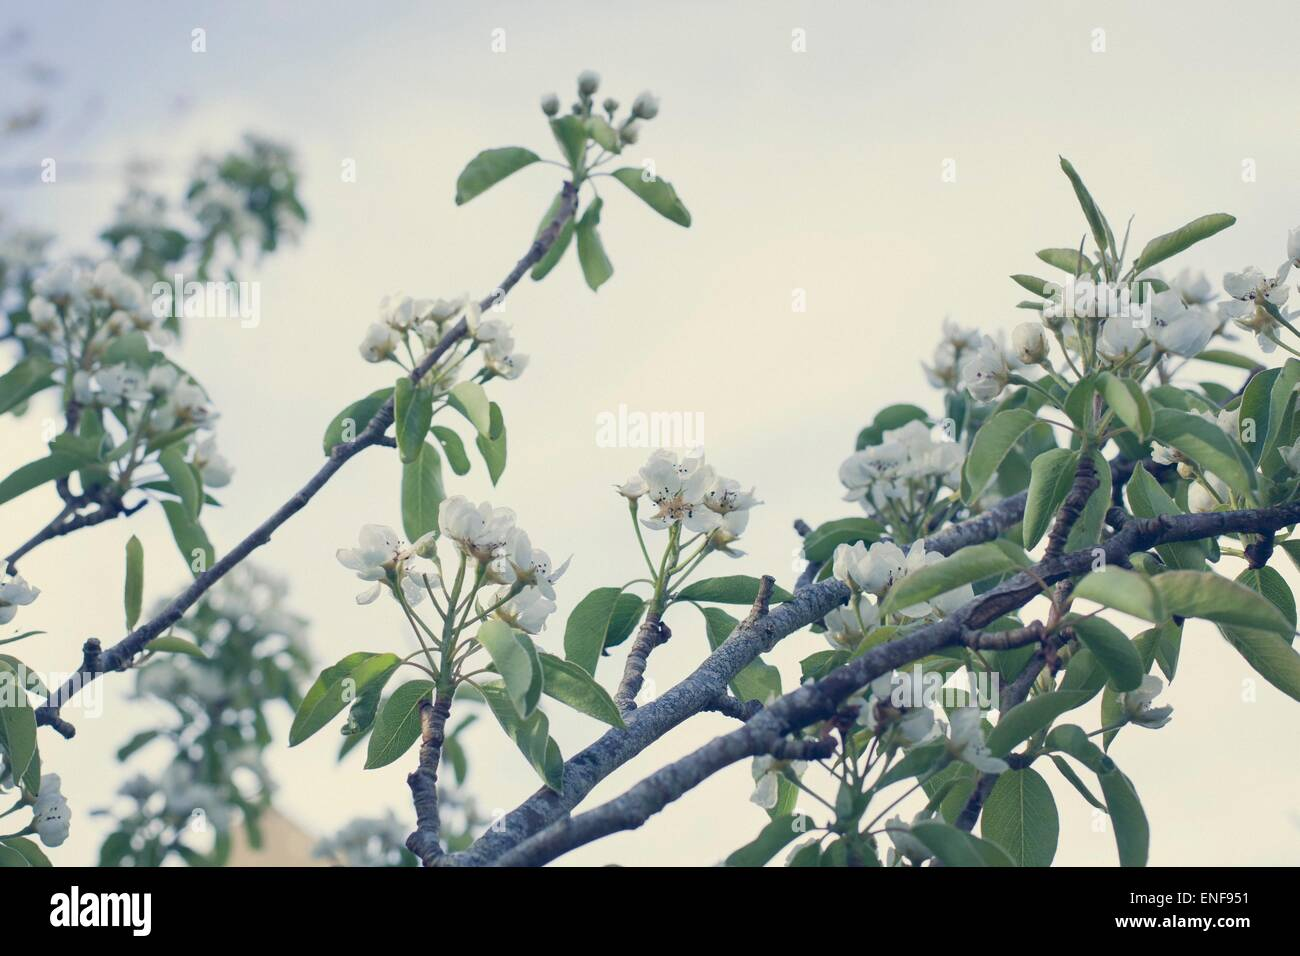 Pear tree blossoms against the sky, vintage tones - Stock Image